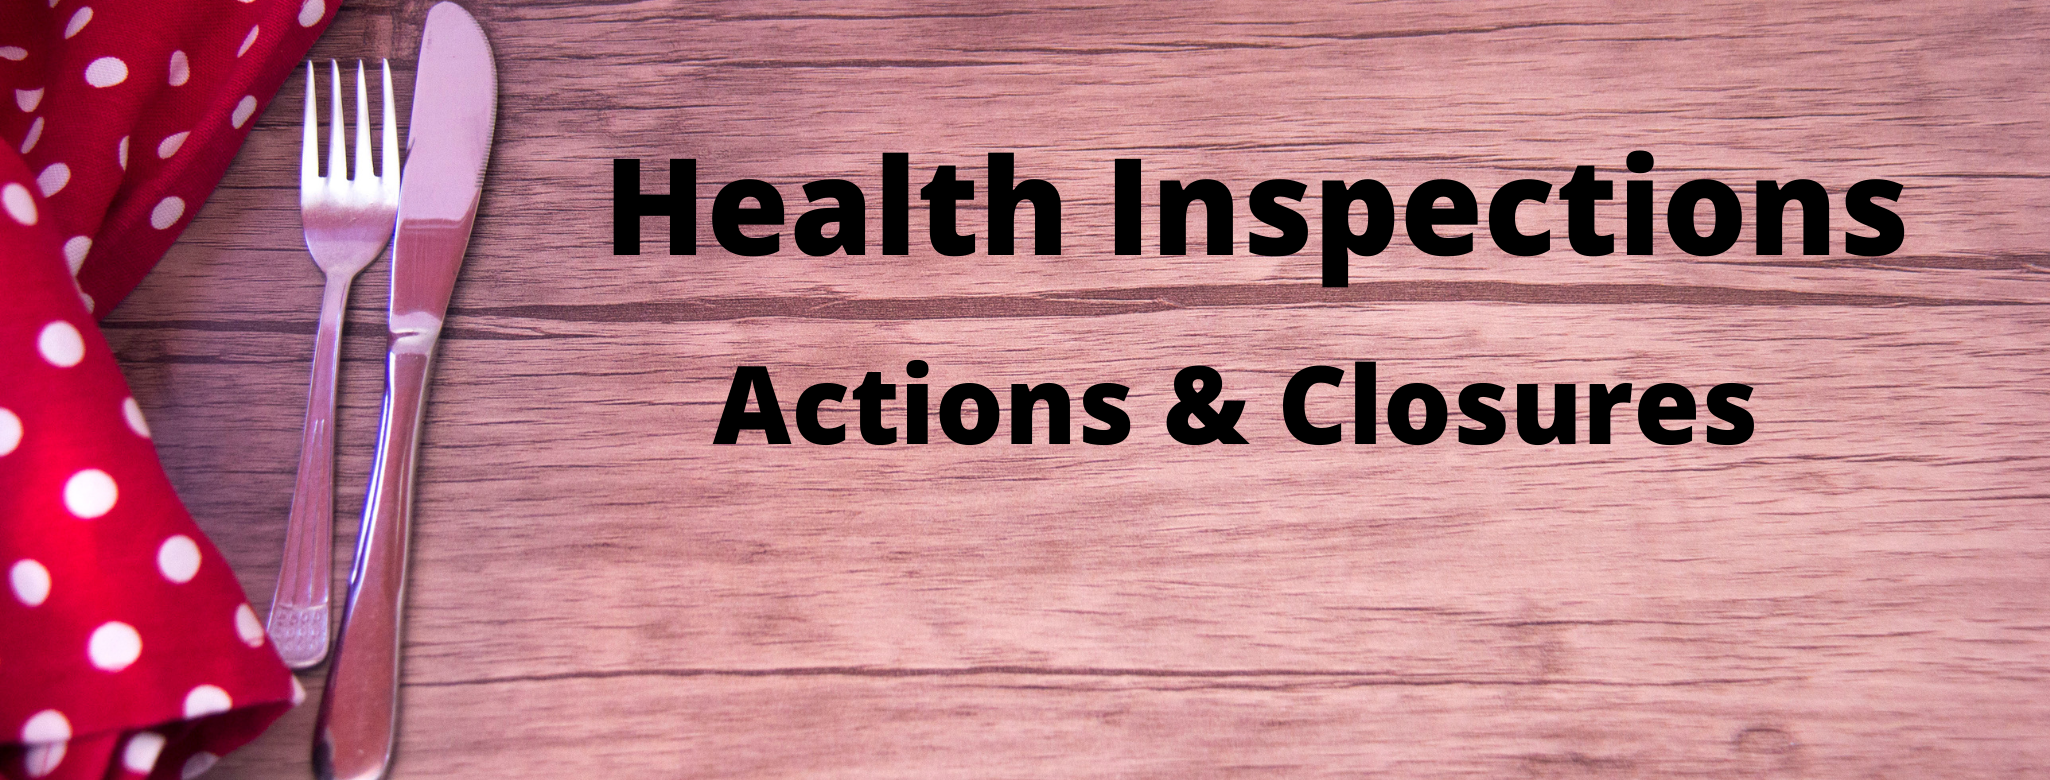 Health Inspections